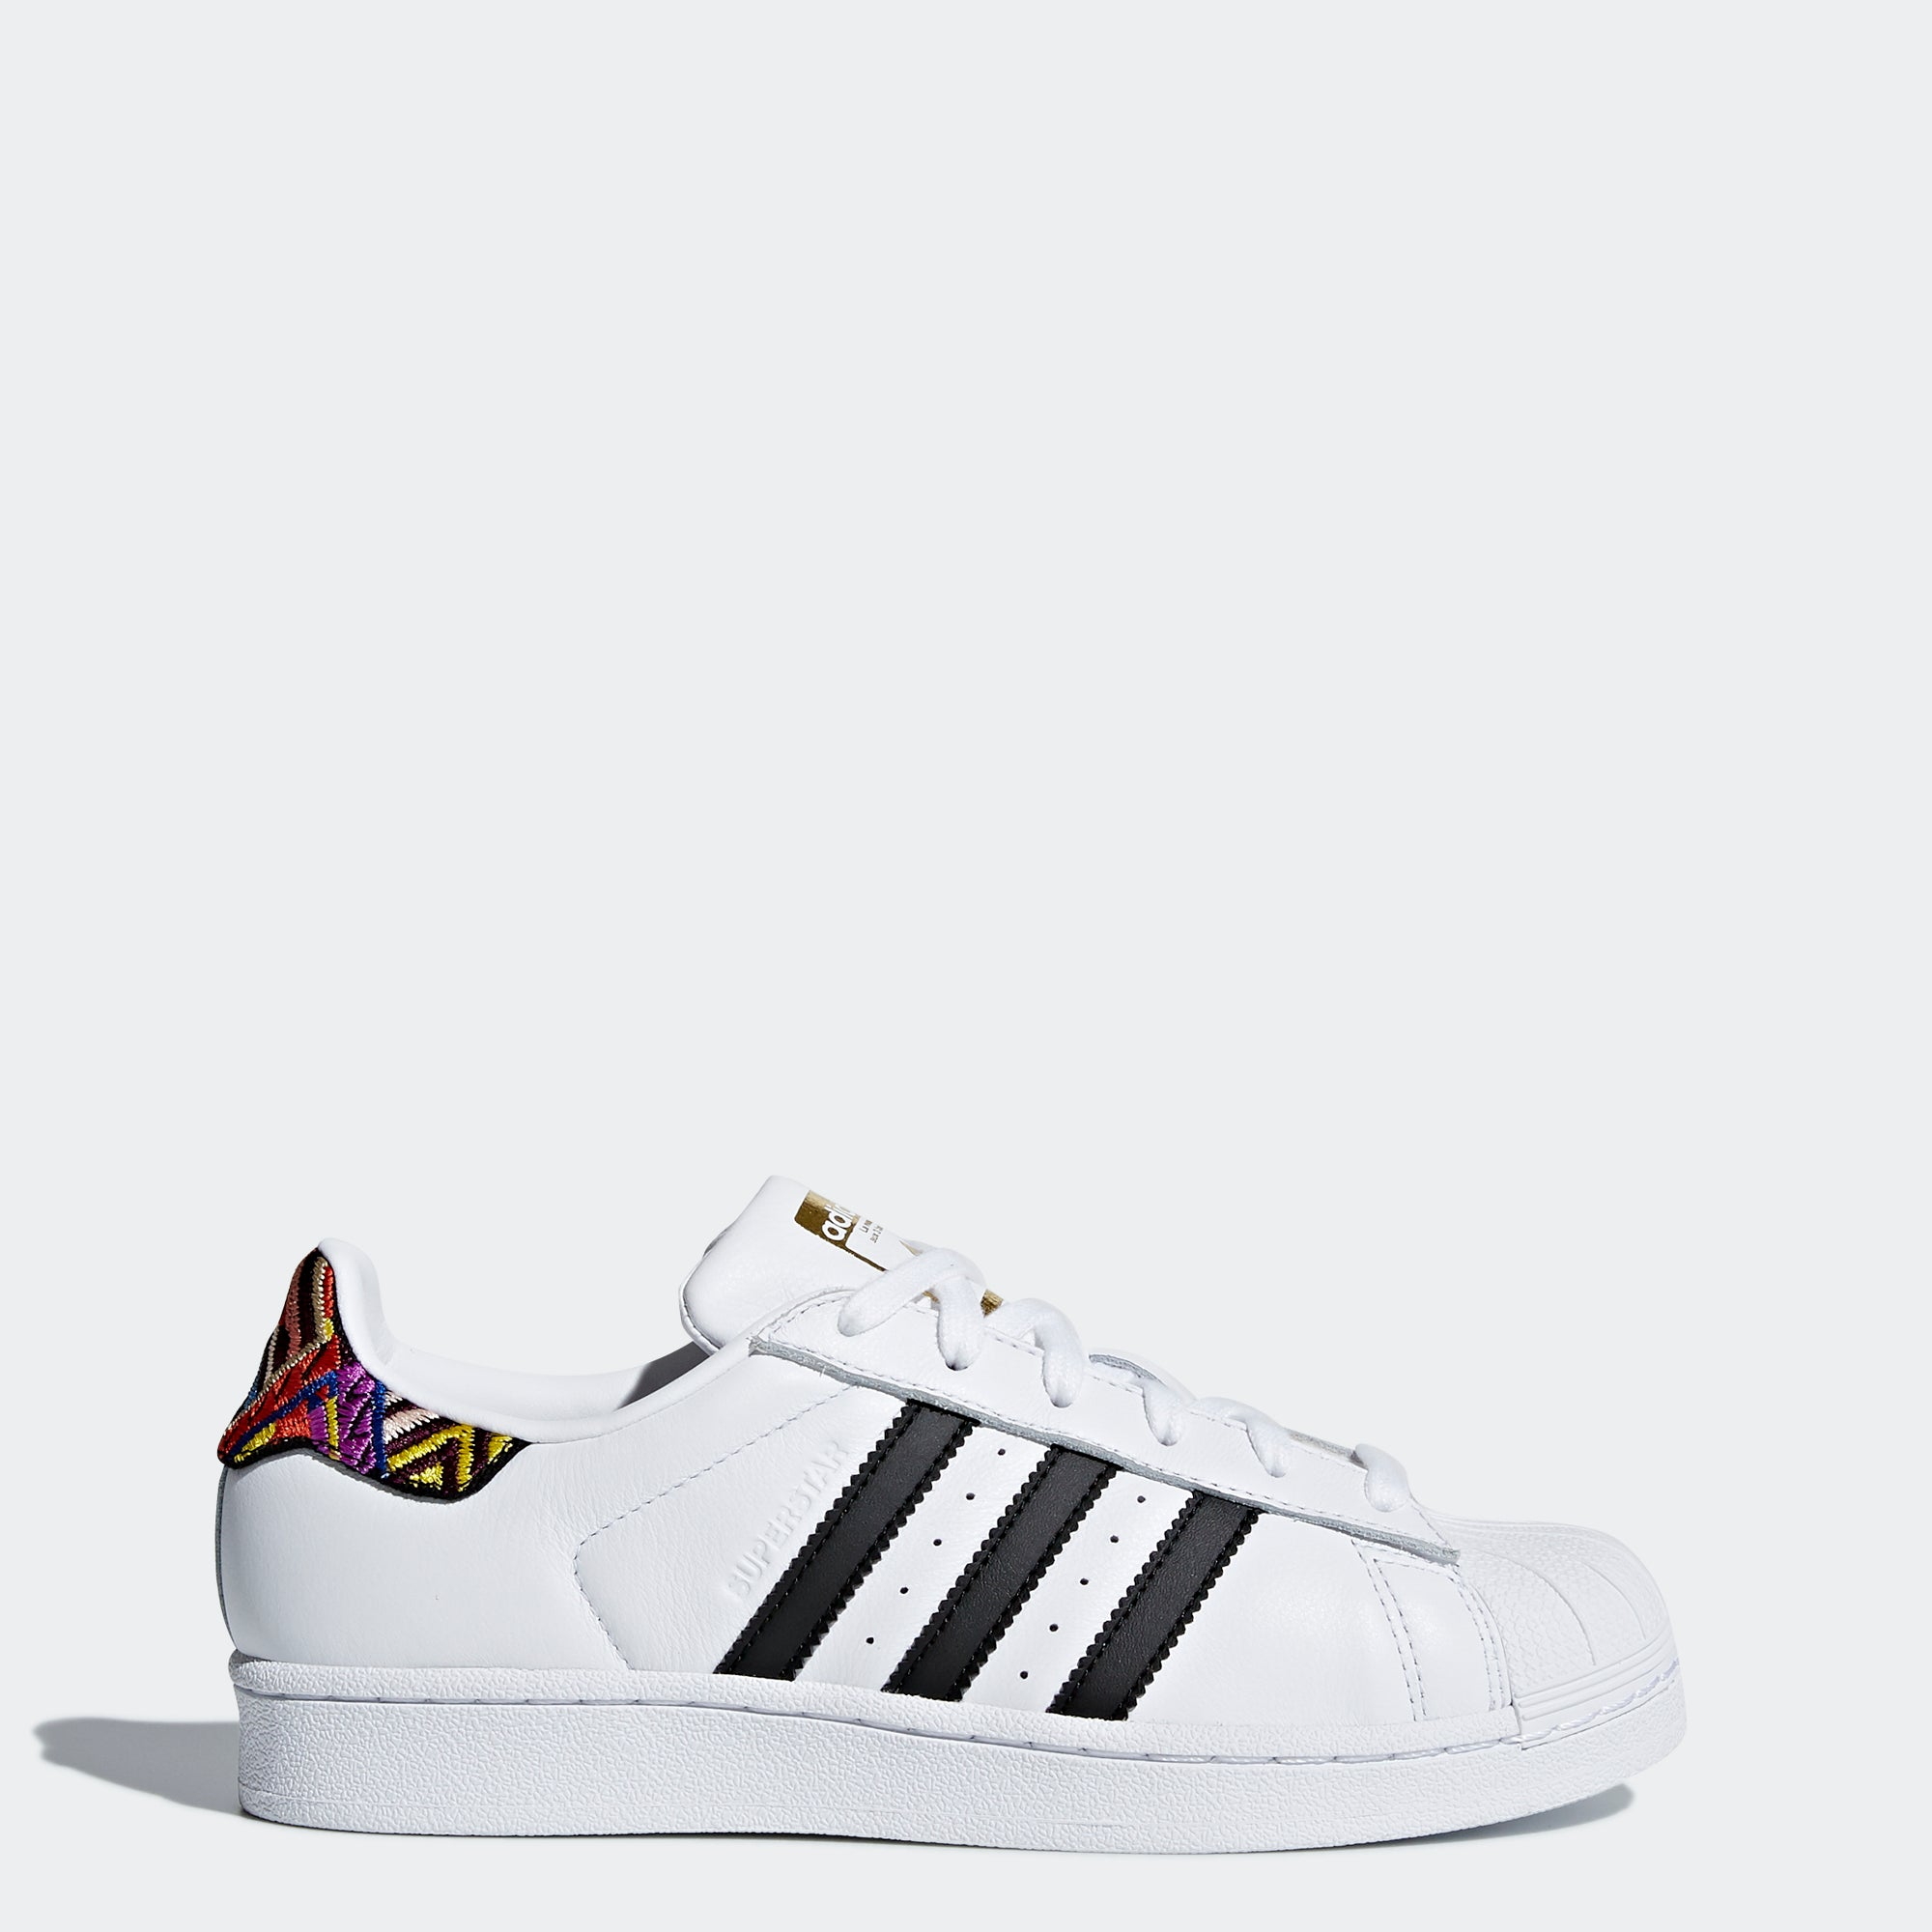 check out 9e803 d0b1a Women s Adidas Originals Superstar Shoes White and Multicolor